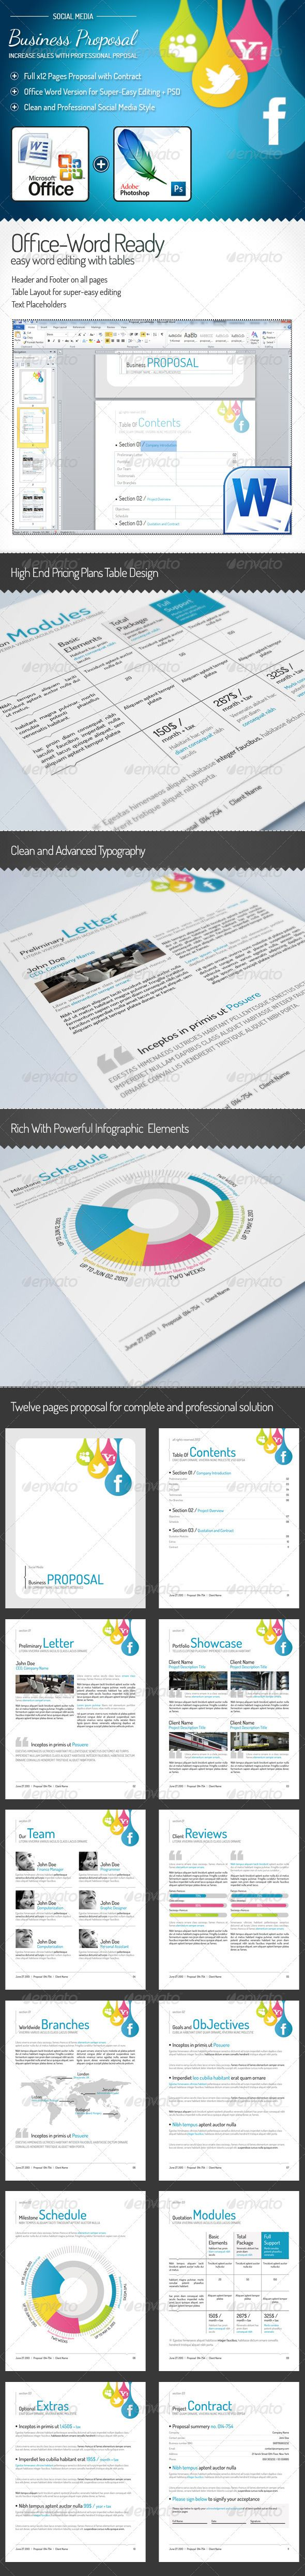 Full Proposal Template + Office Word Version  #GraphicRiver          Updates             26.10.2012, fix the office word version       Complete Business Proposal  A full generic business Proposal Template, A total of Twelve print ready 8.5×11 PSD template files for a complete proposal.